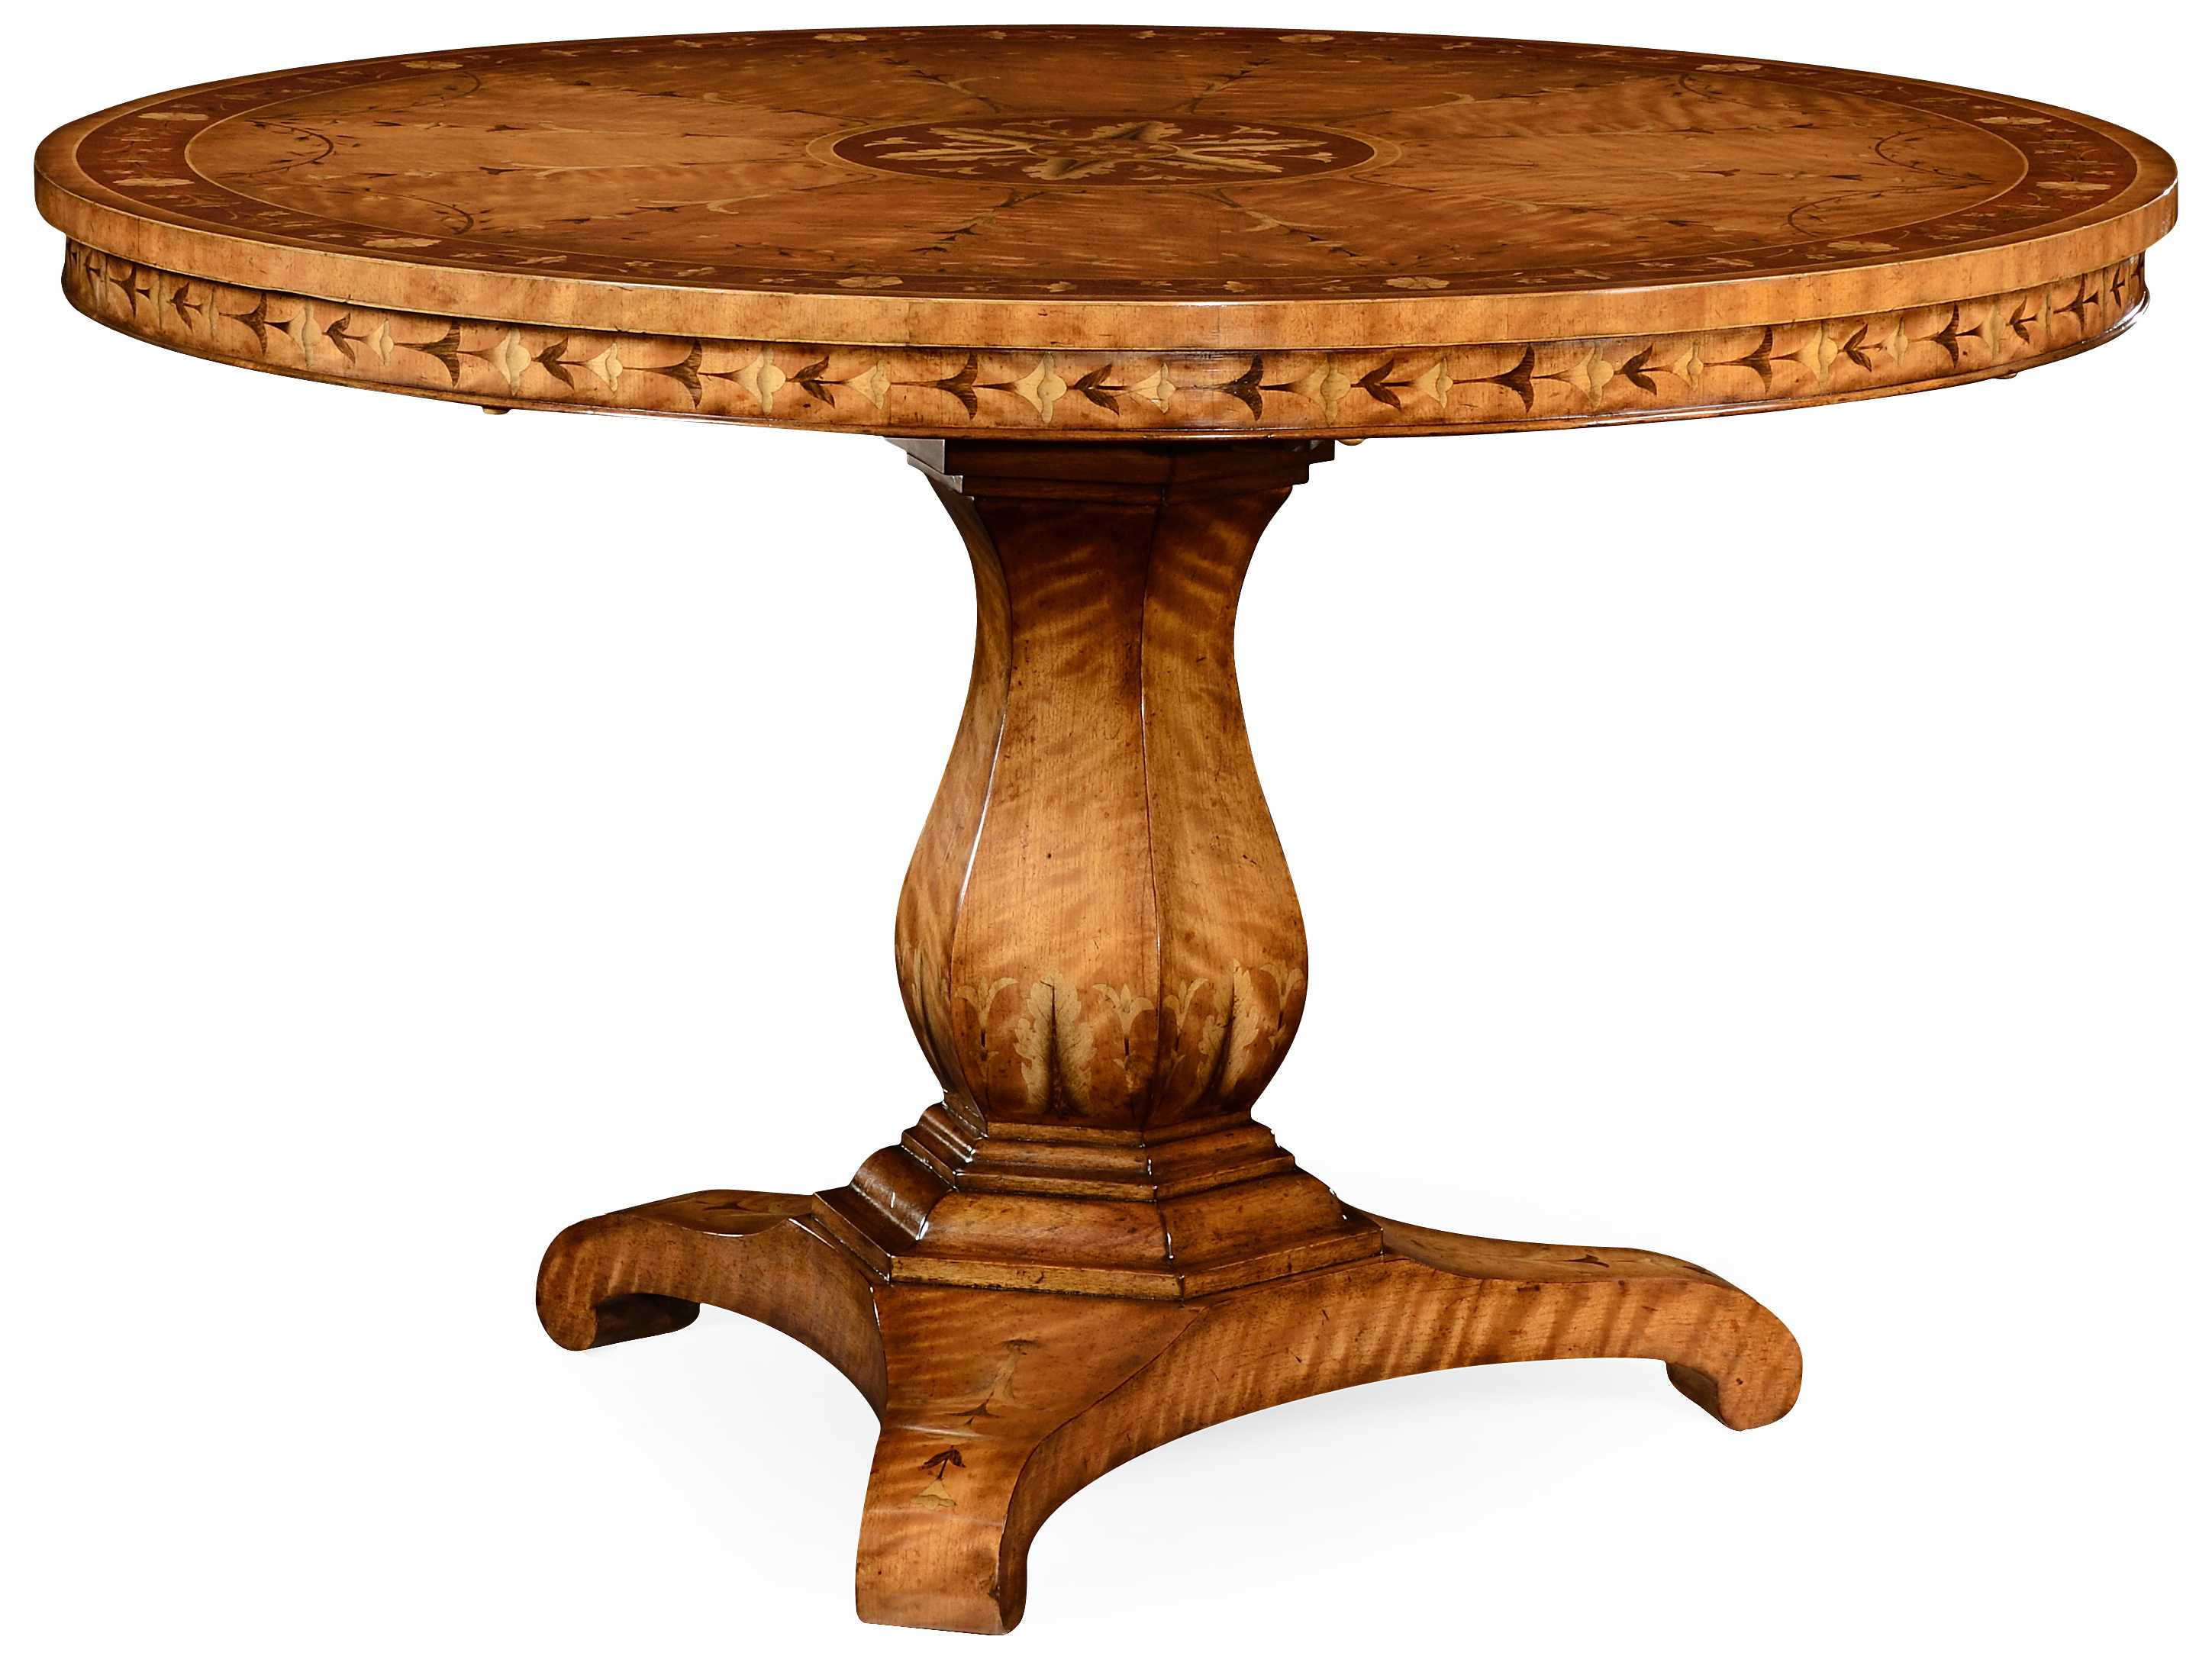 Front Foyer Round Table : Jonathan charles versailles light satinwood round foyer